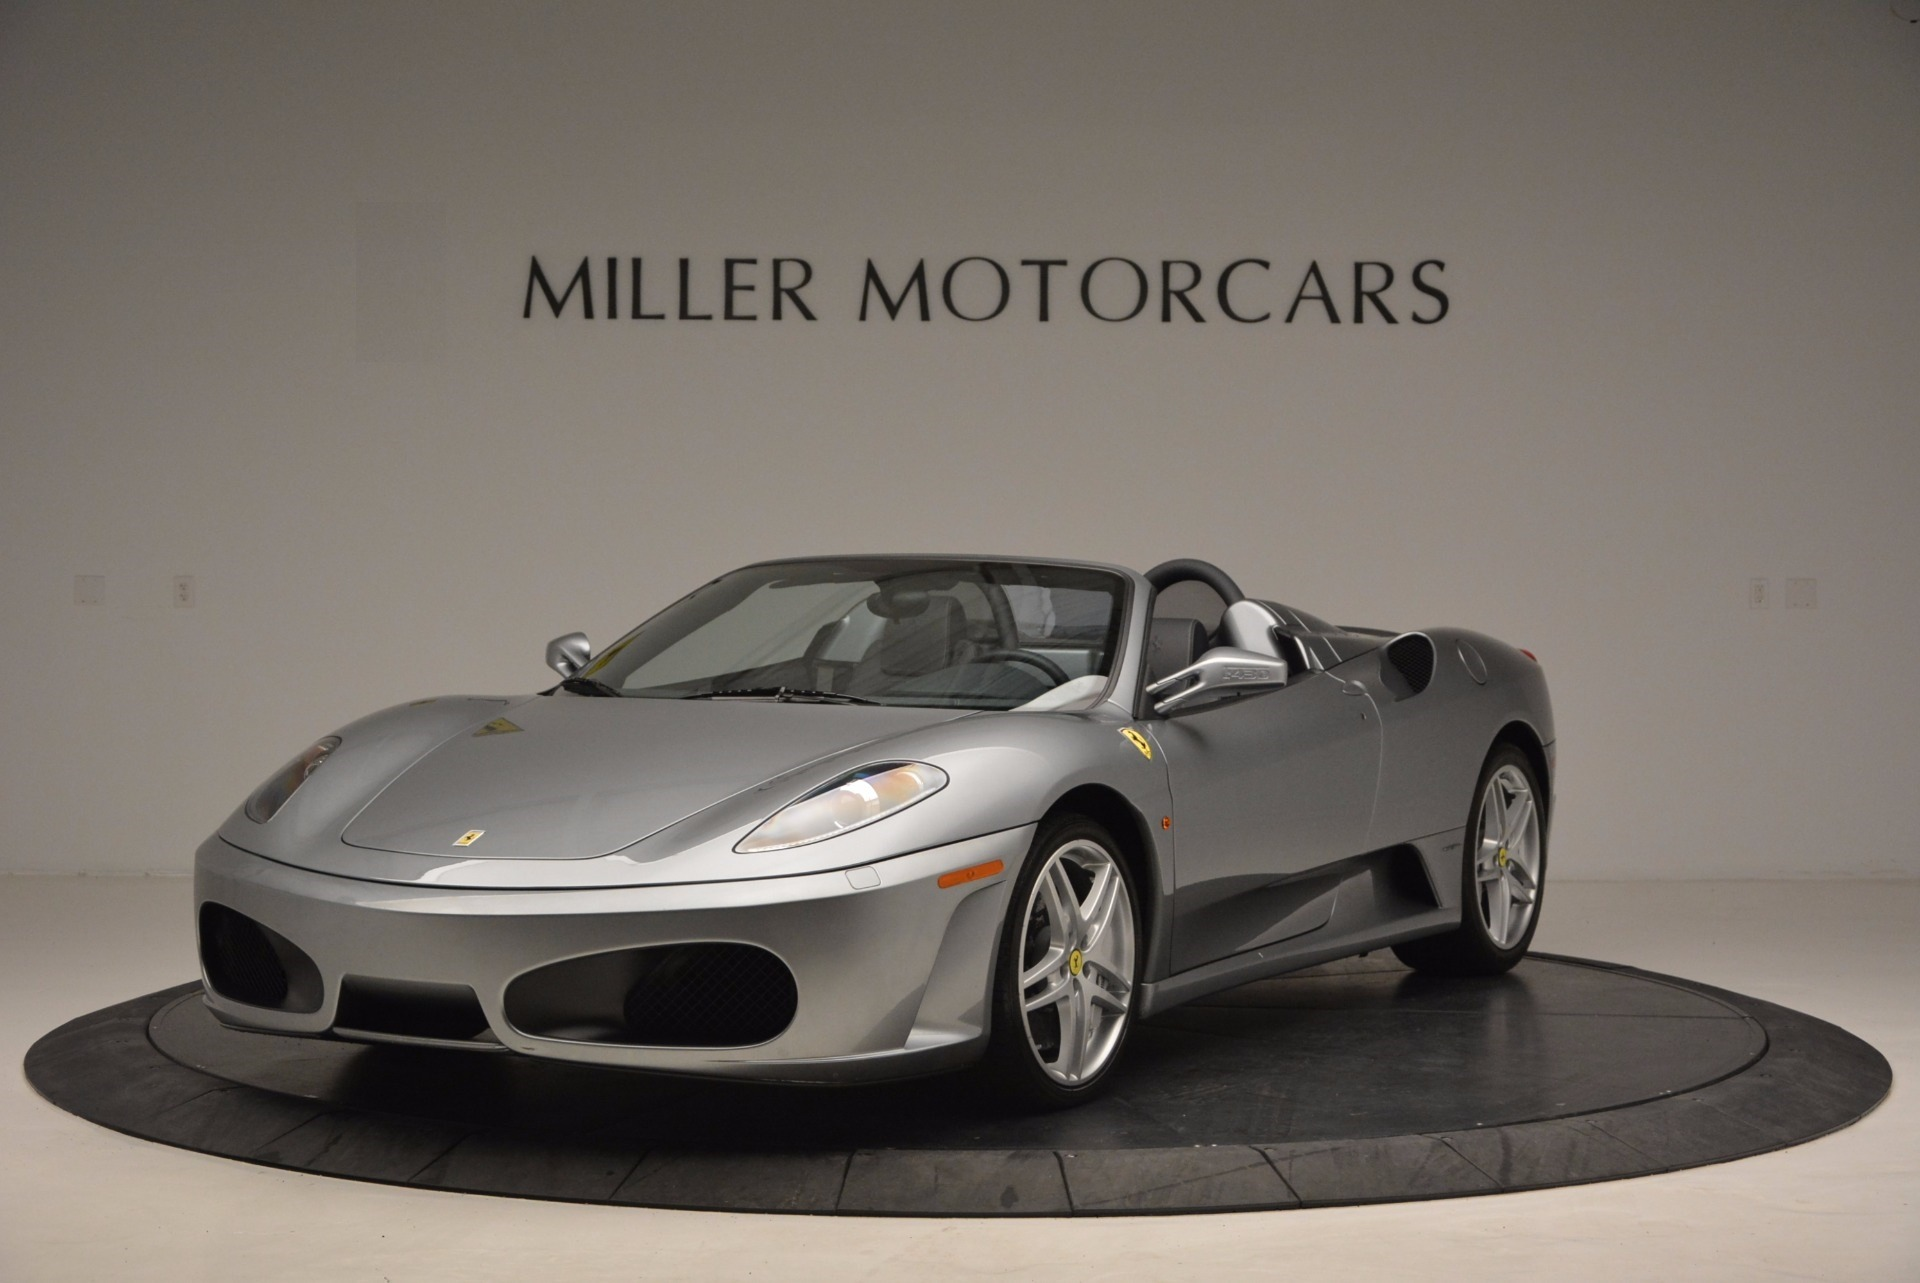 Used 2007 Ferrari F430 Spider for sale Sold at Bugatti of Greenwich in Greenwich CT 06830 1